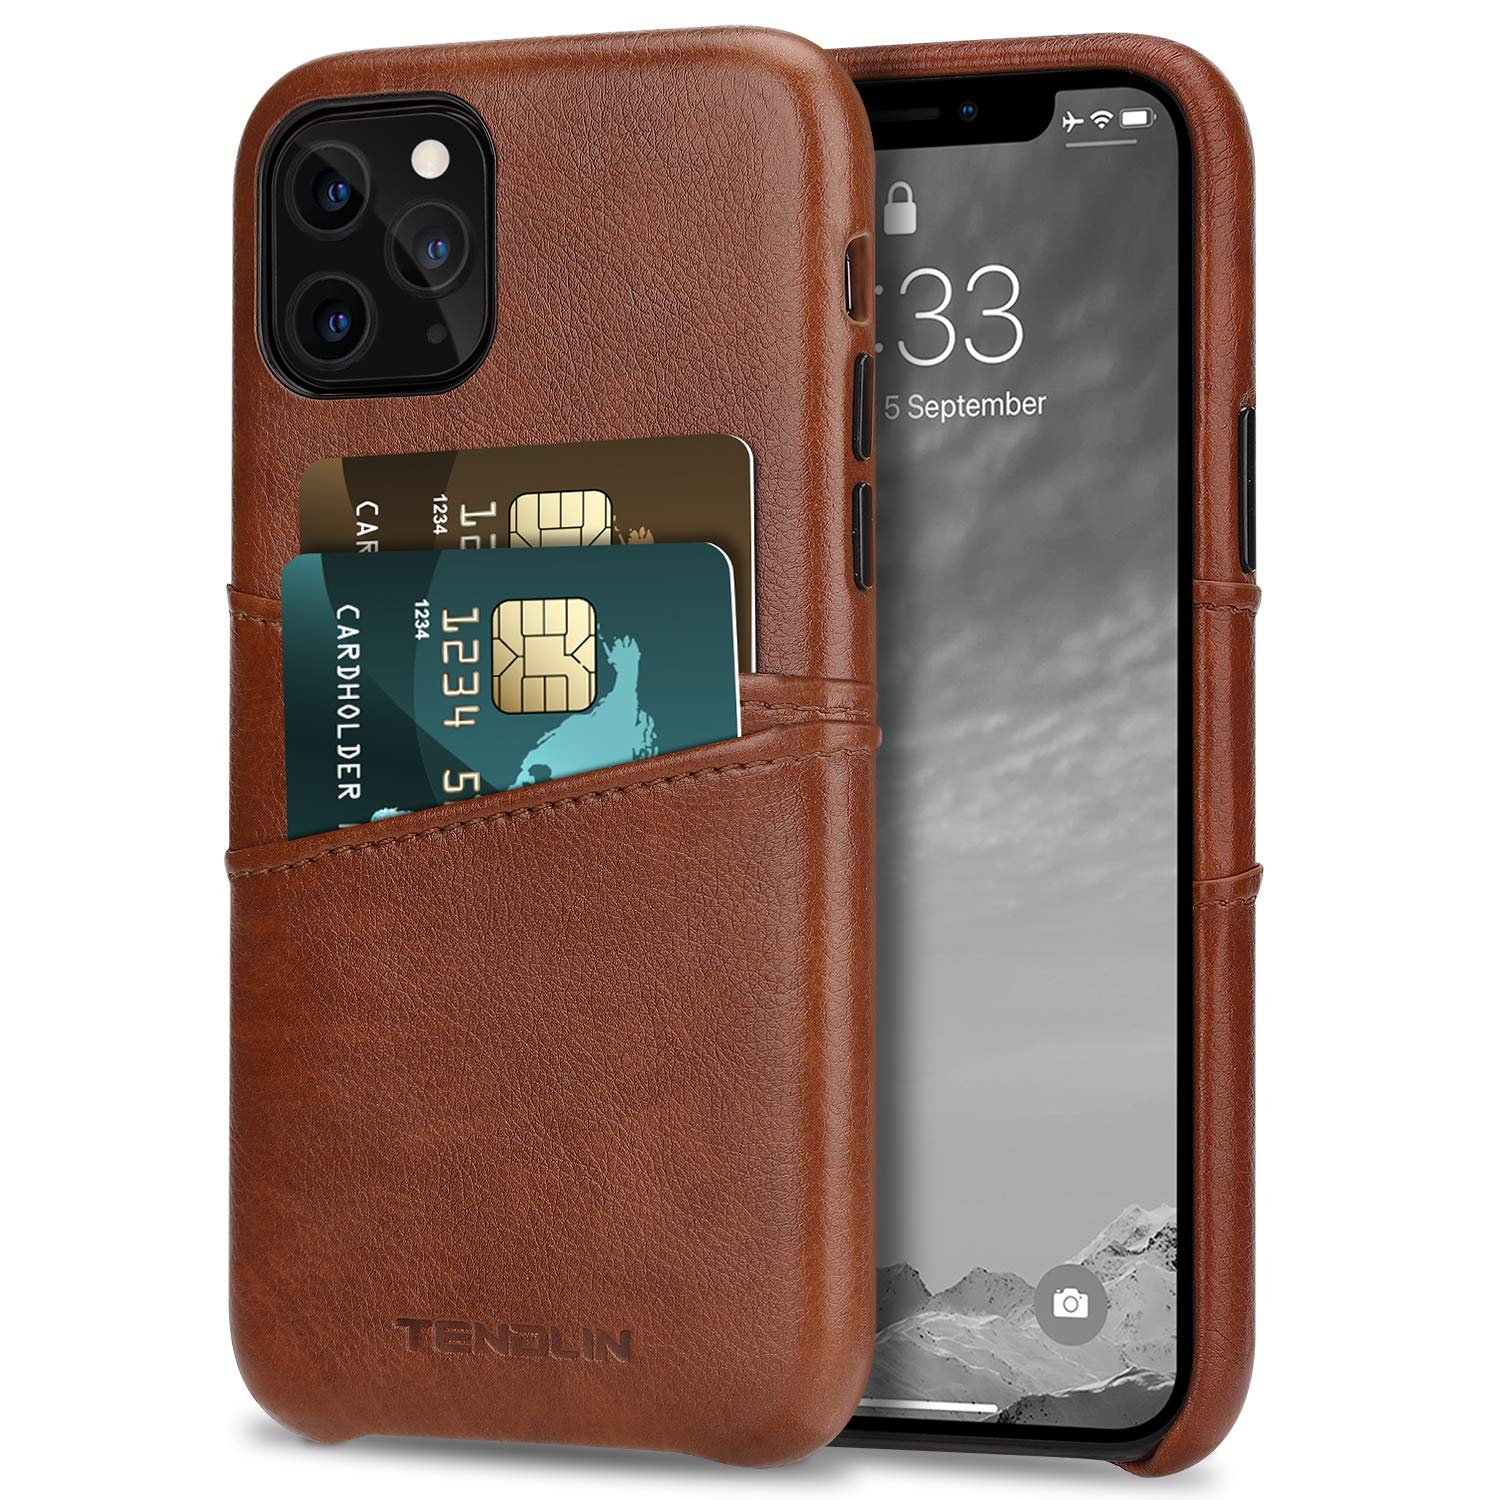 TENDLIN Compatible with iPhone 11 Pro Case Wallet Design Premium Leather Case with 2 Card Holder Slots (Brown)